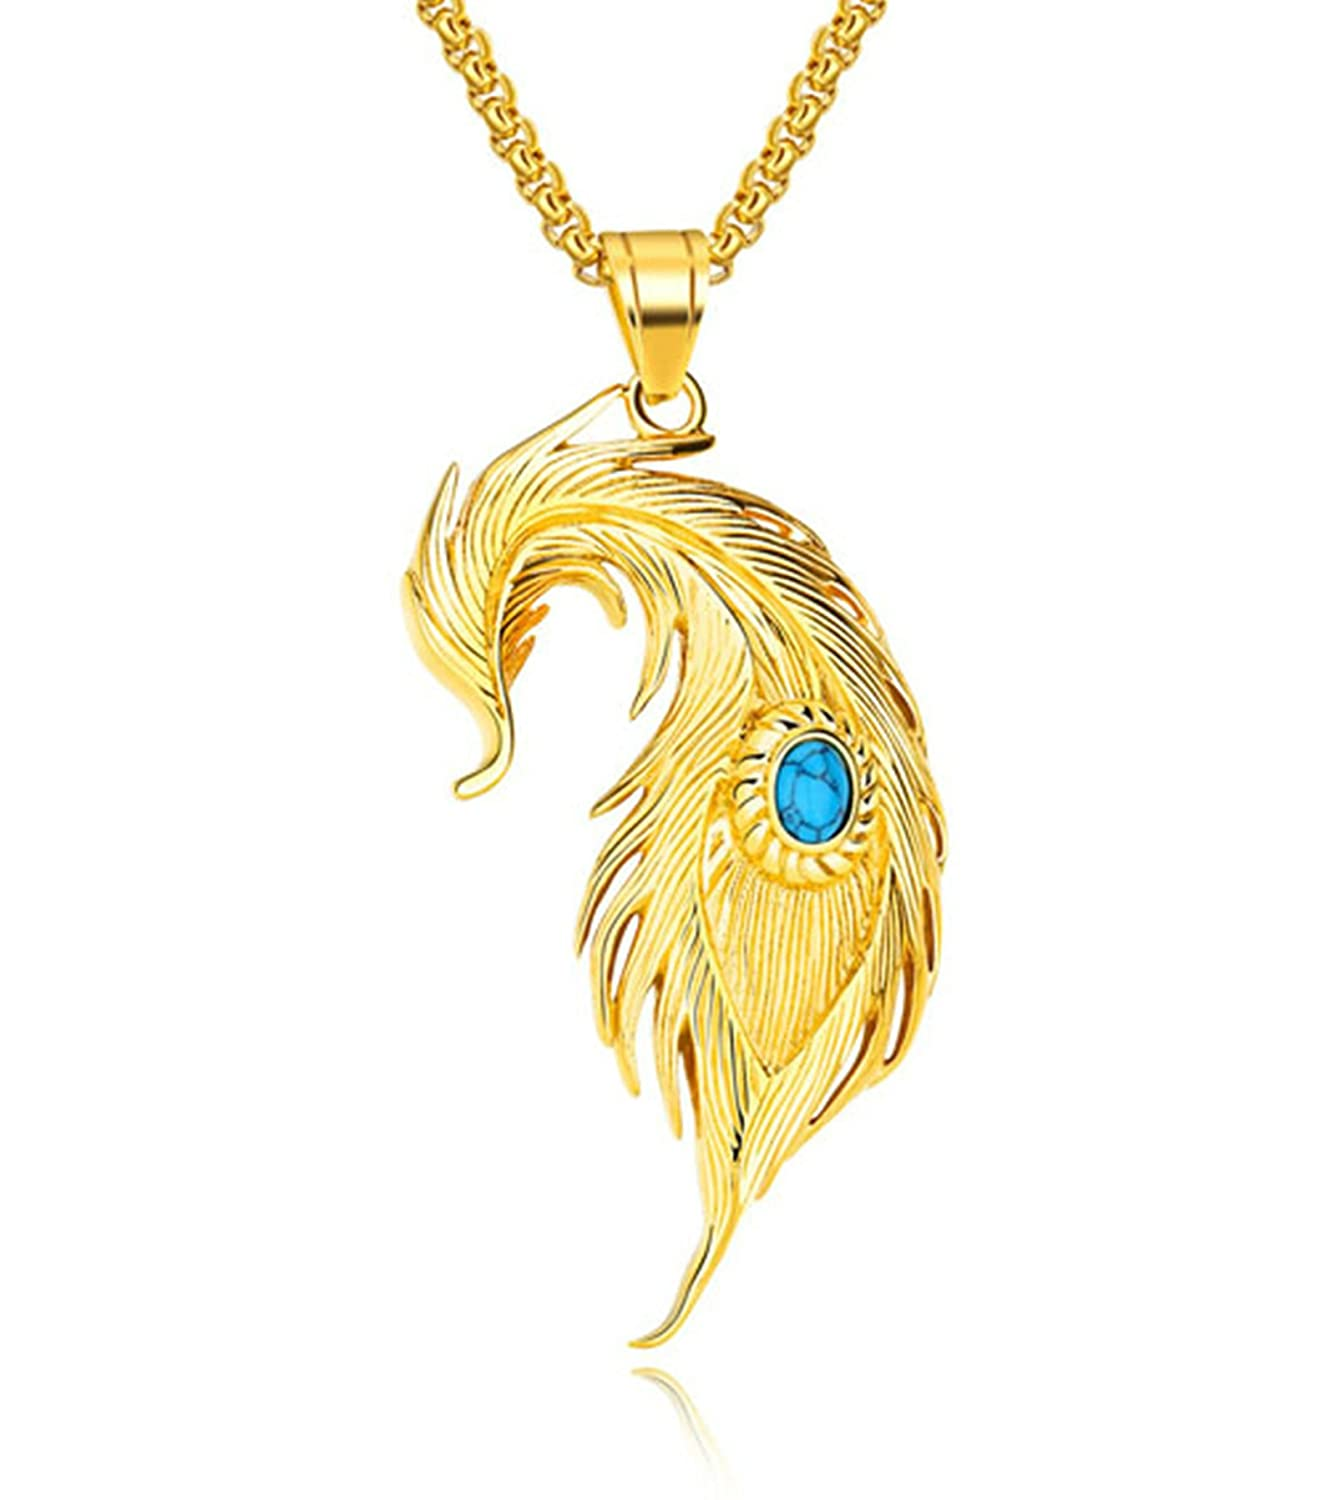 KnSam Necklace Fashion Jewelry Stainless Steel Necklace for Men Feather